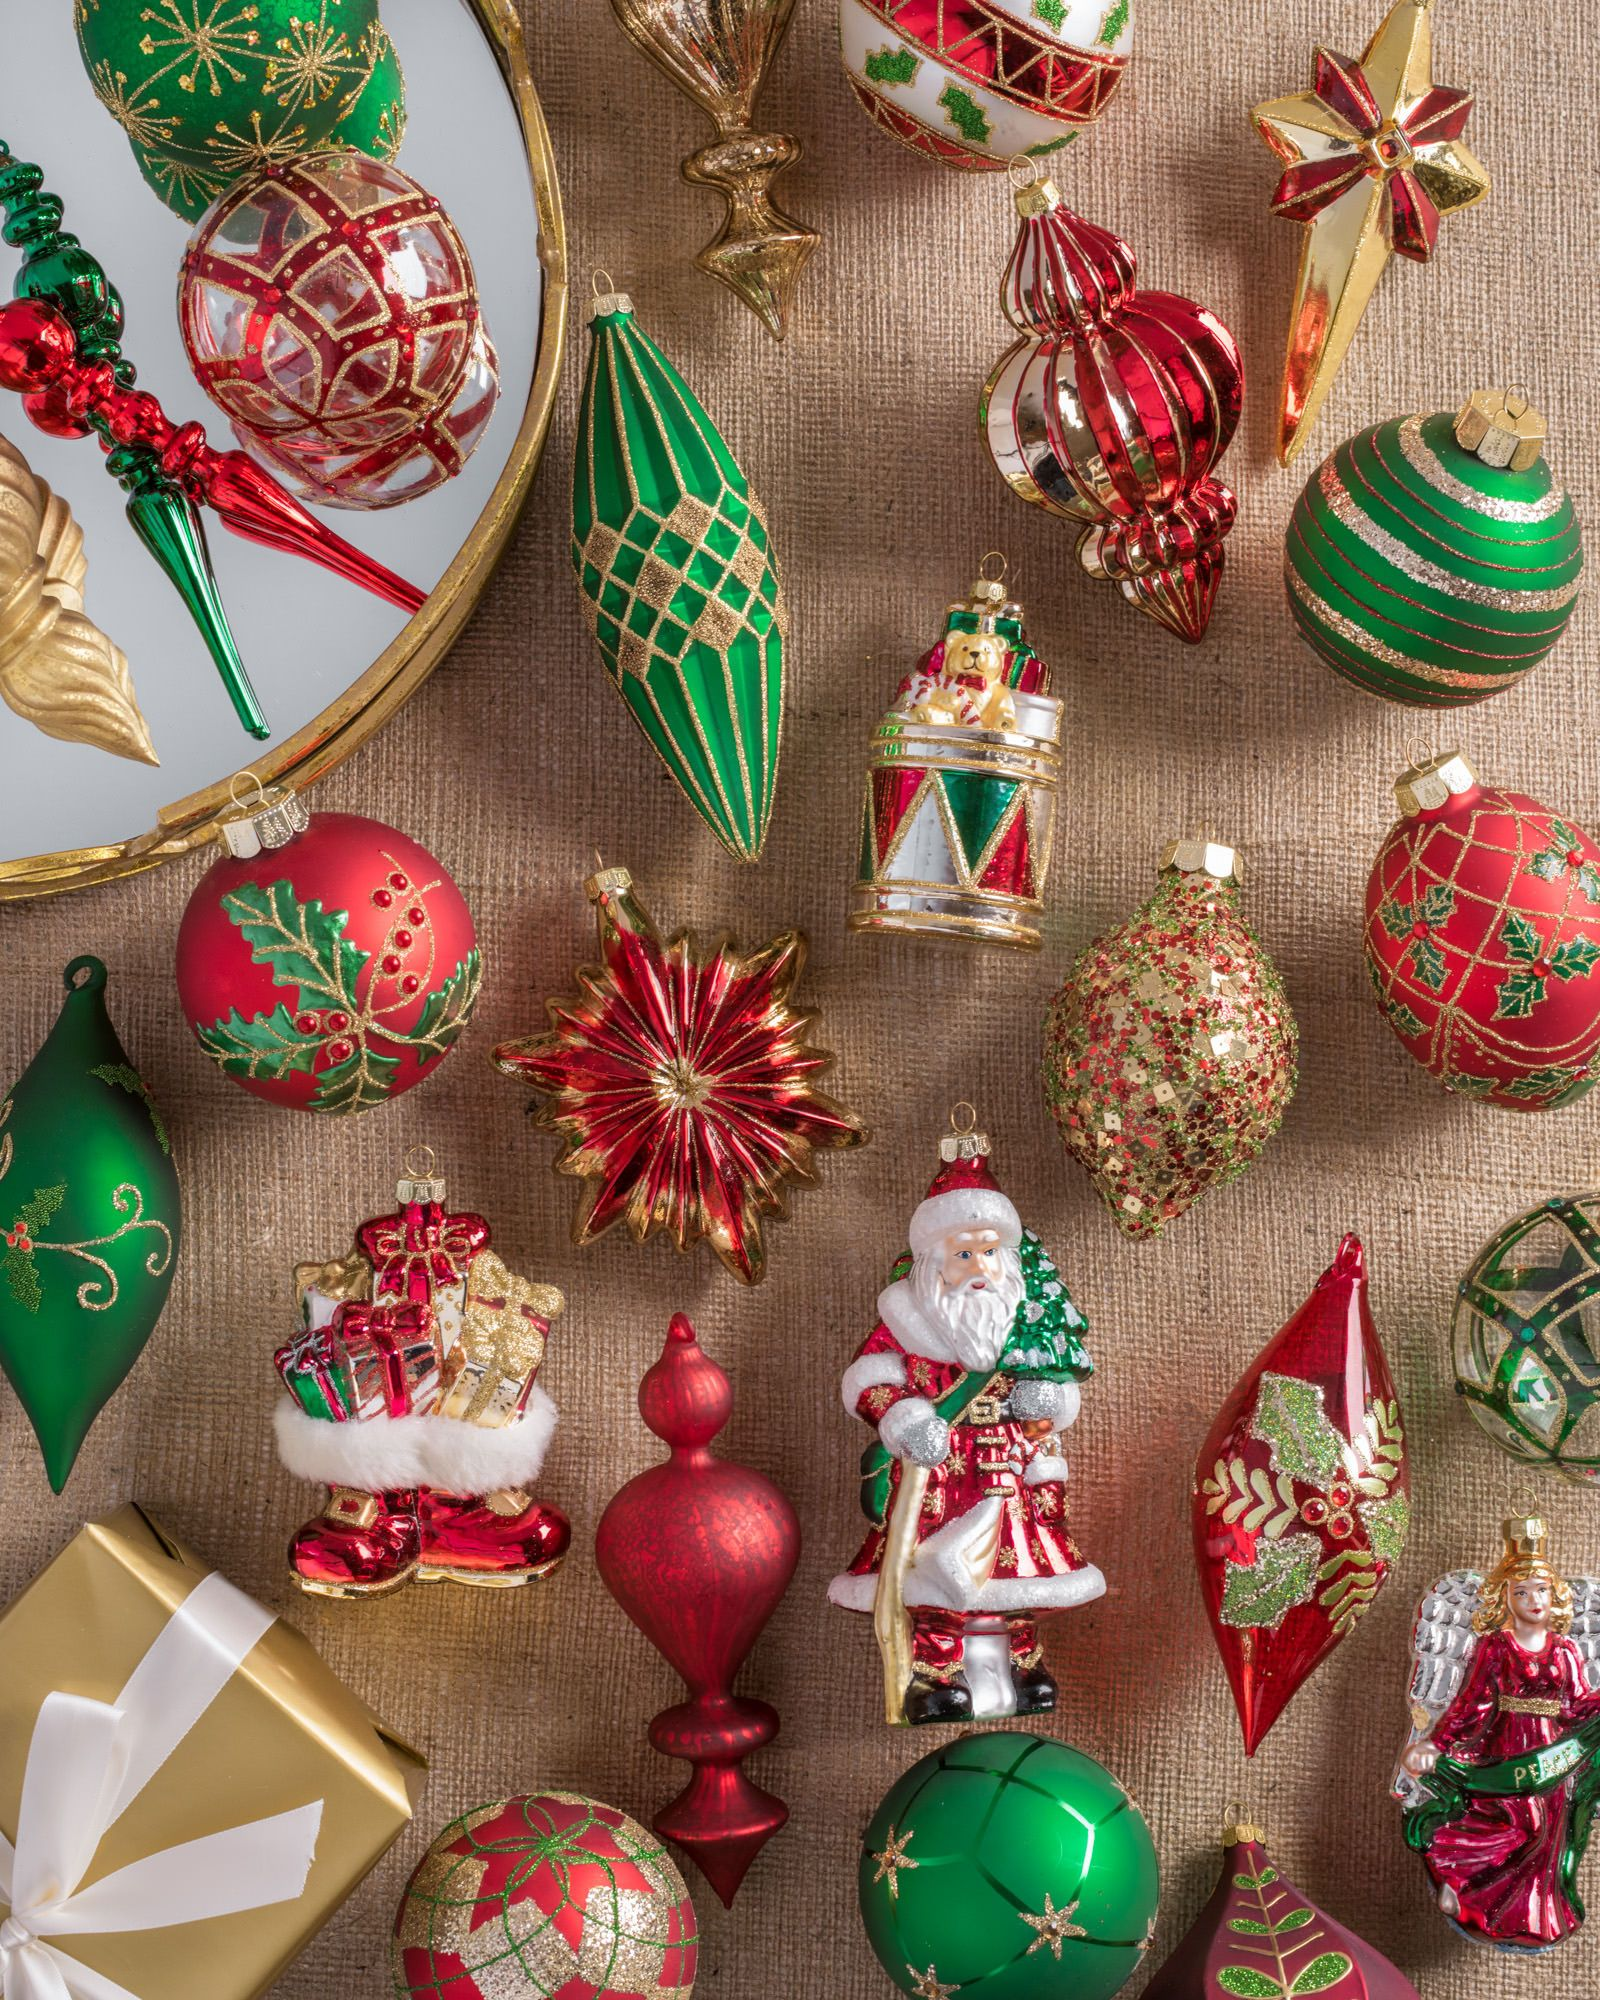 Skip store-bought decor and get crafty this season with these adorable homemade ornaments. Trust us, your tree will look better without those pricy ornaments from stores.